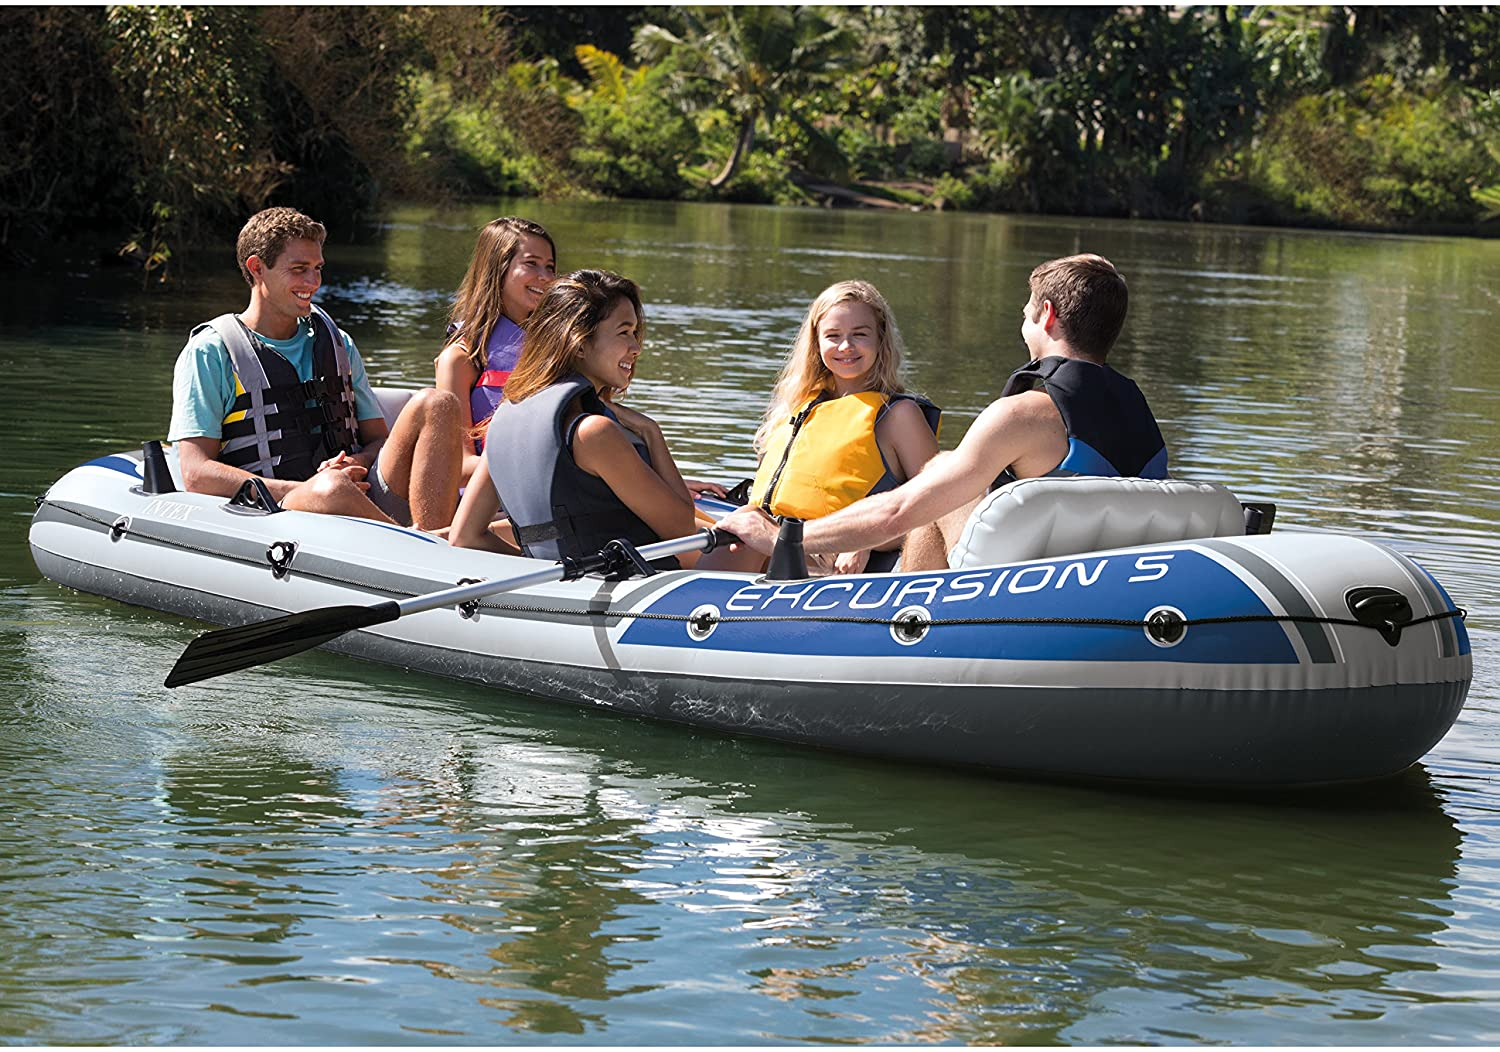 Intex Best Available Alternate to Pexmor Inflatable Boat